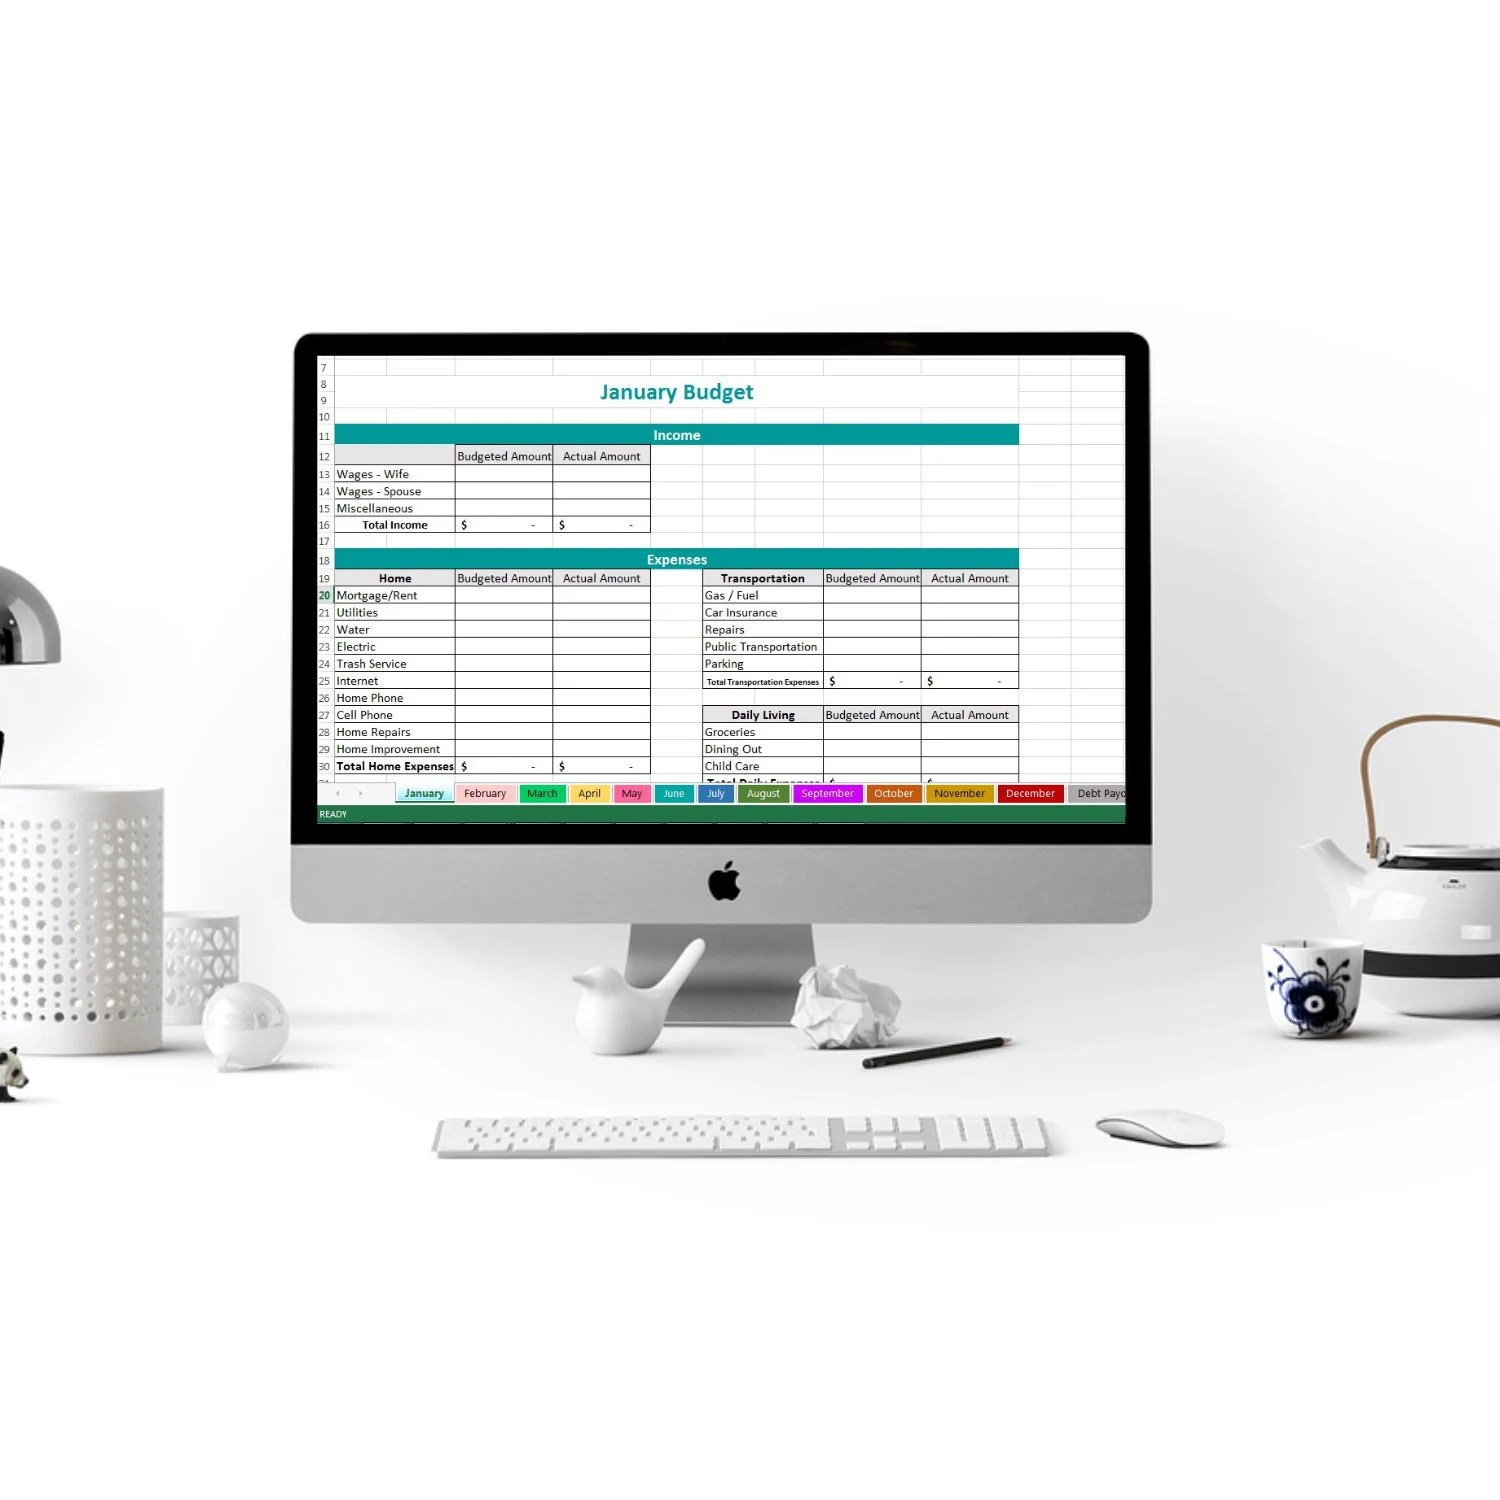 Excel Budget Spreadsheet Expense Tracker Family Budget Etsy